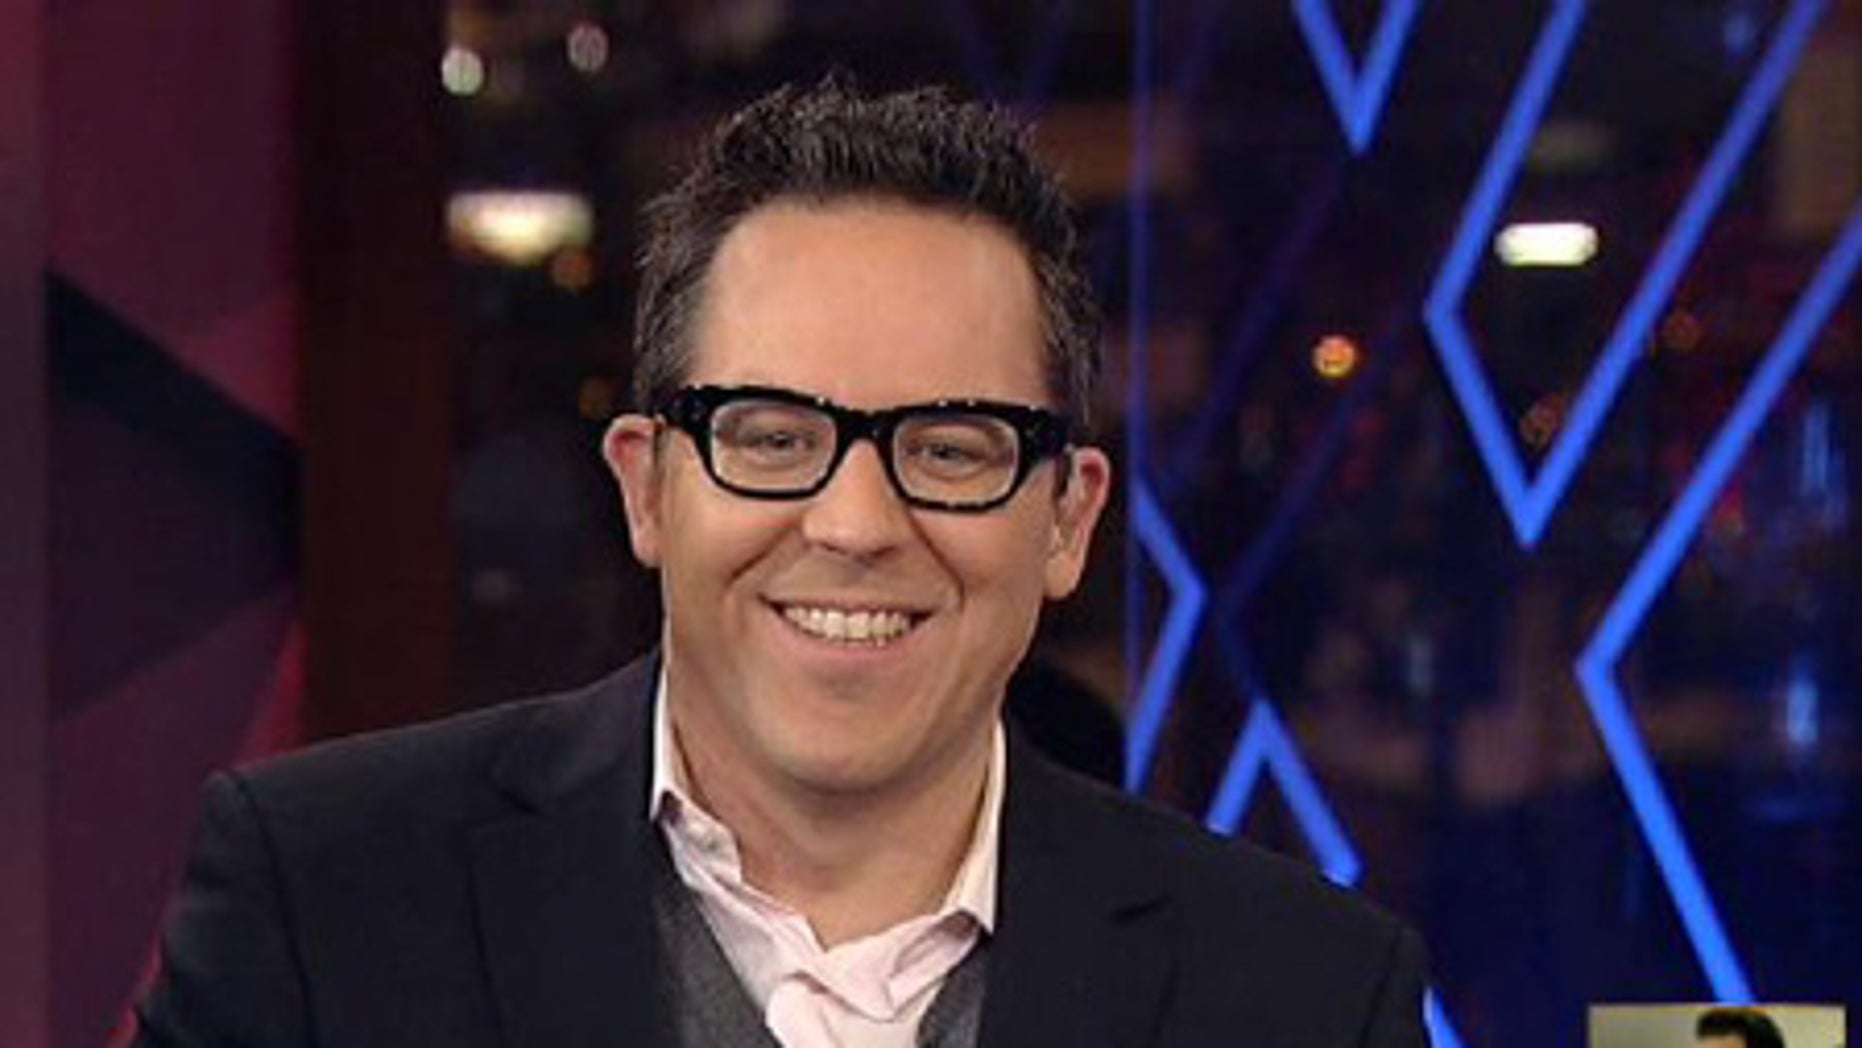 The host with the most, Greg Gutfeld